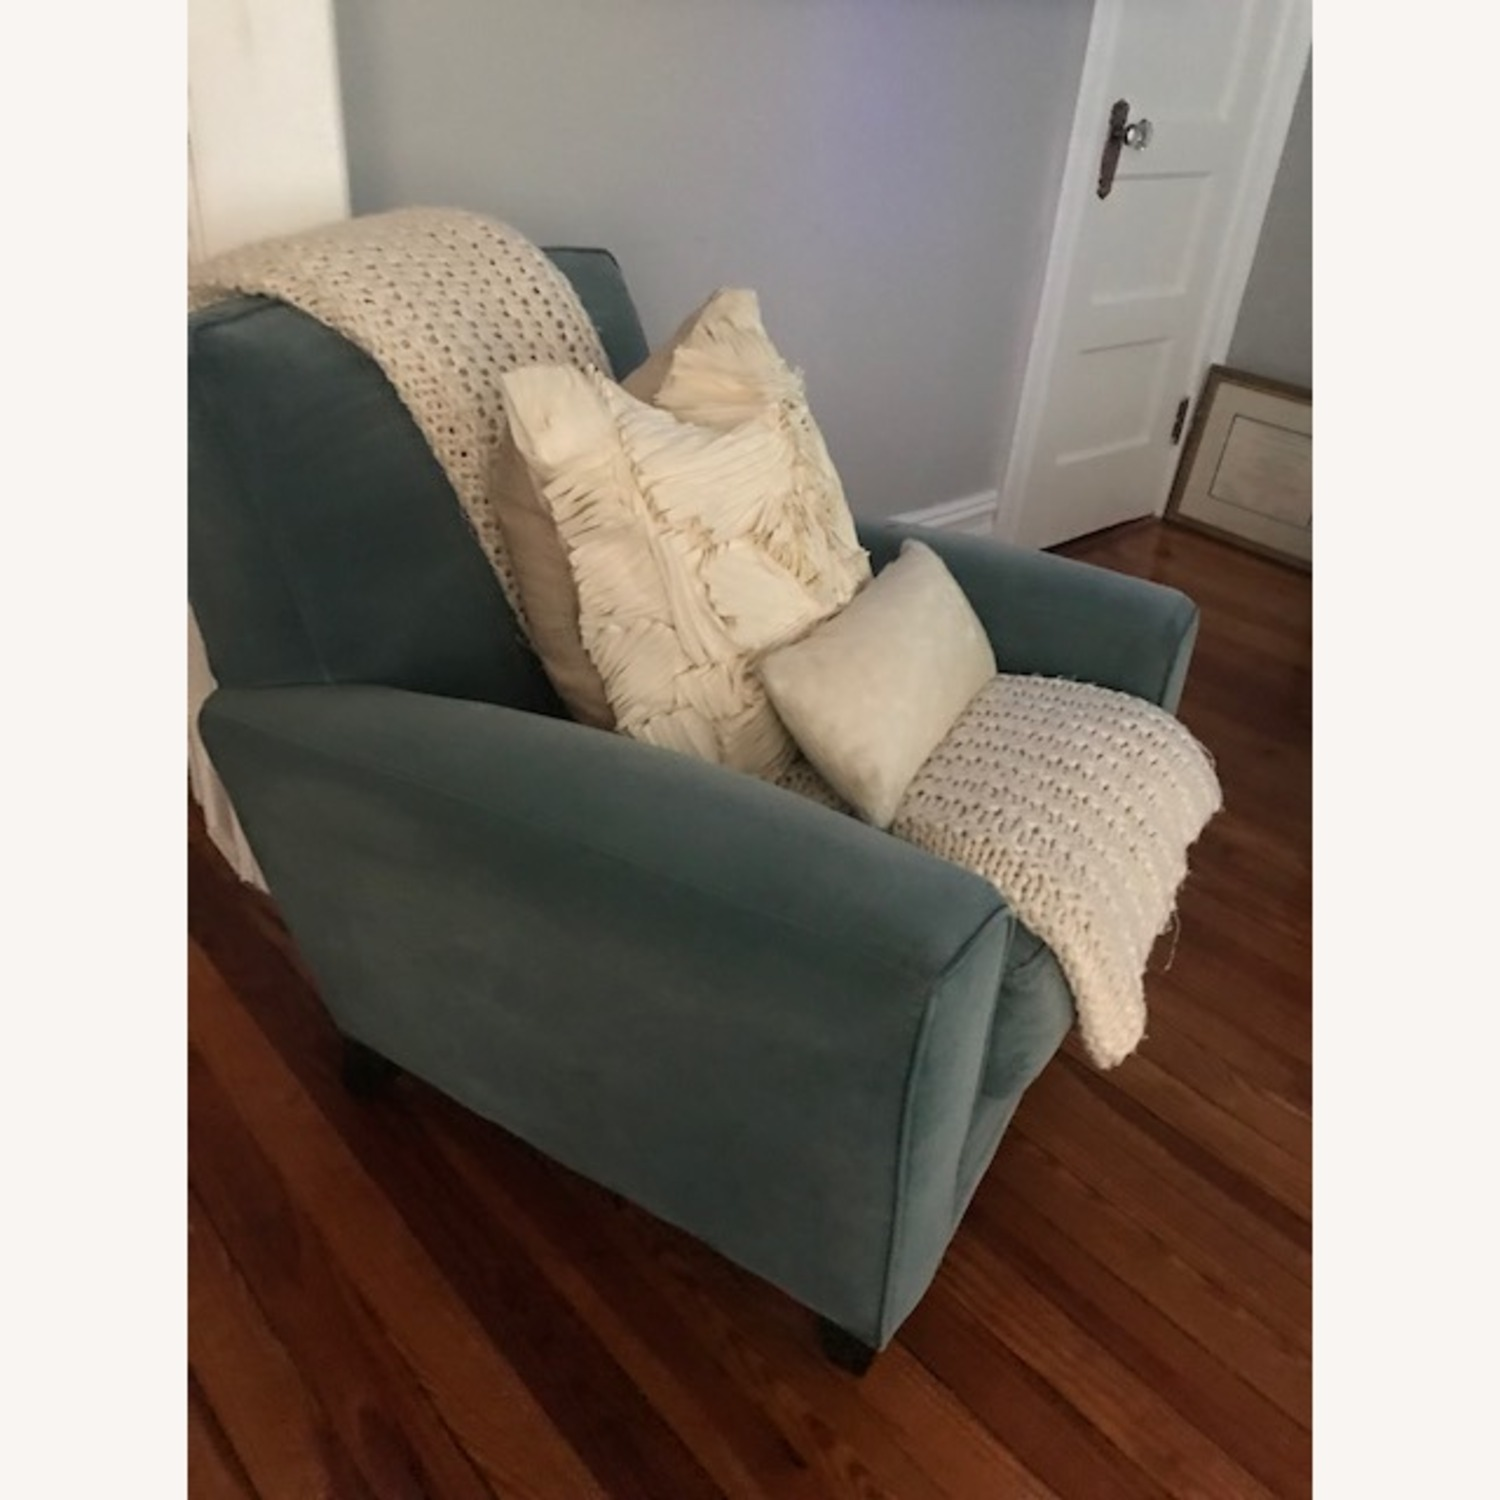 Ethan Allen Soho Chairs (2) - image-3